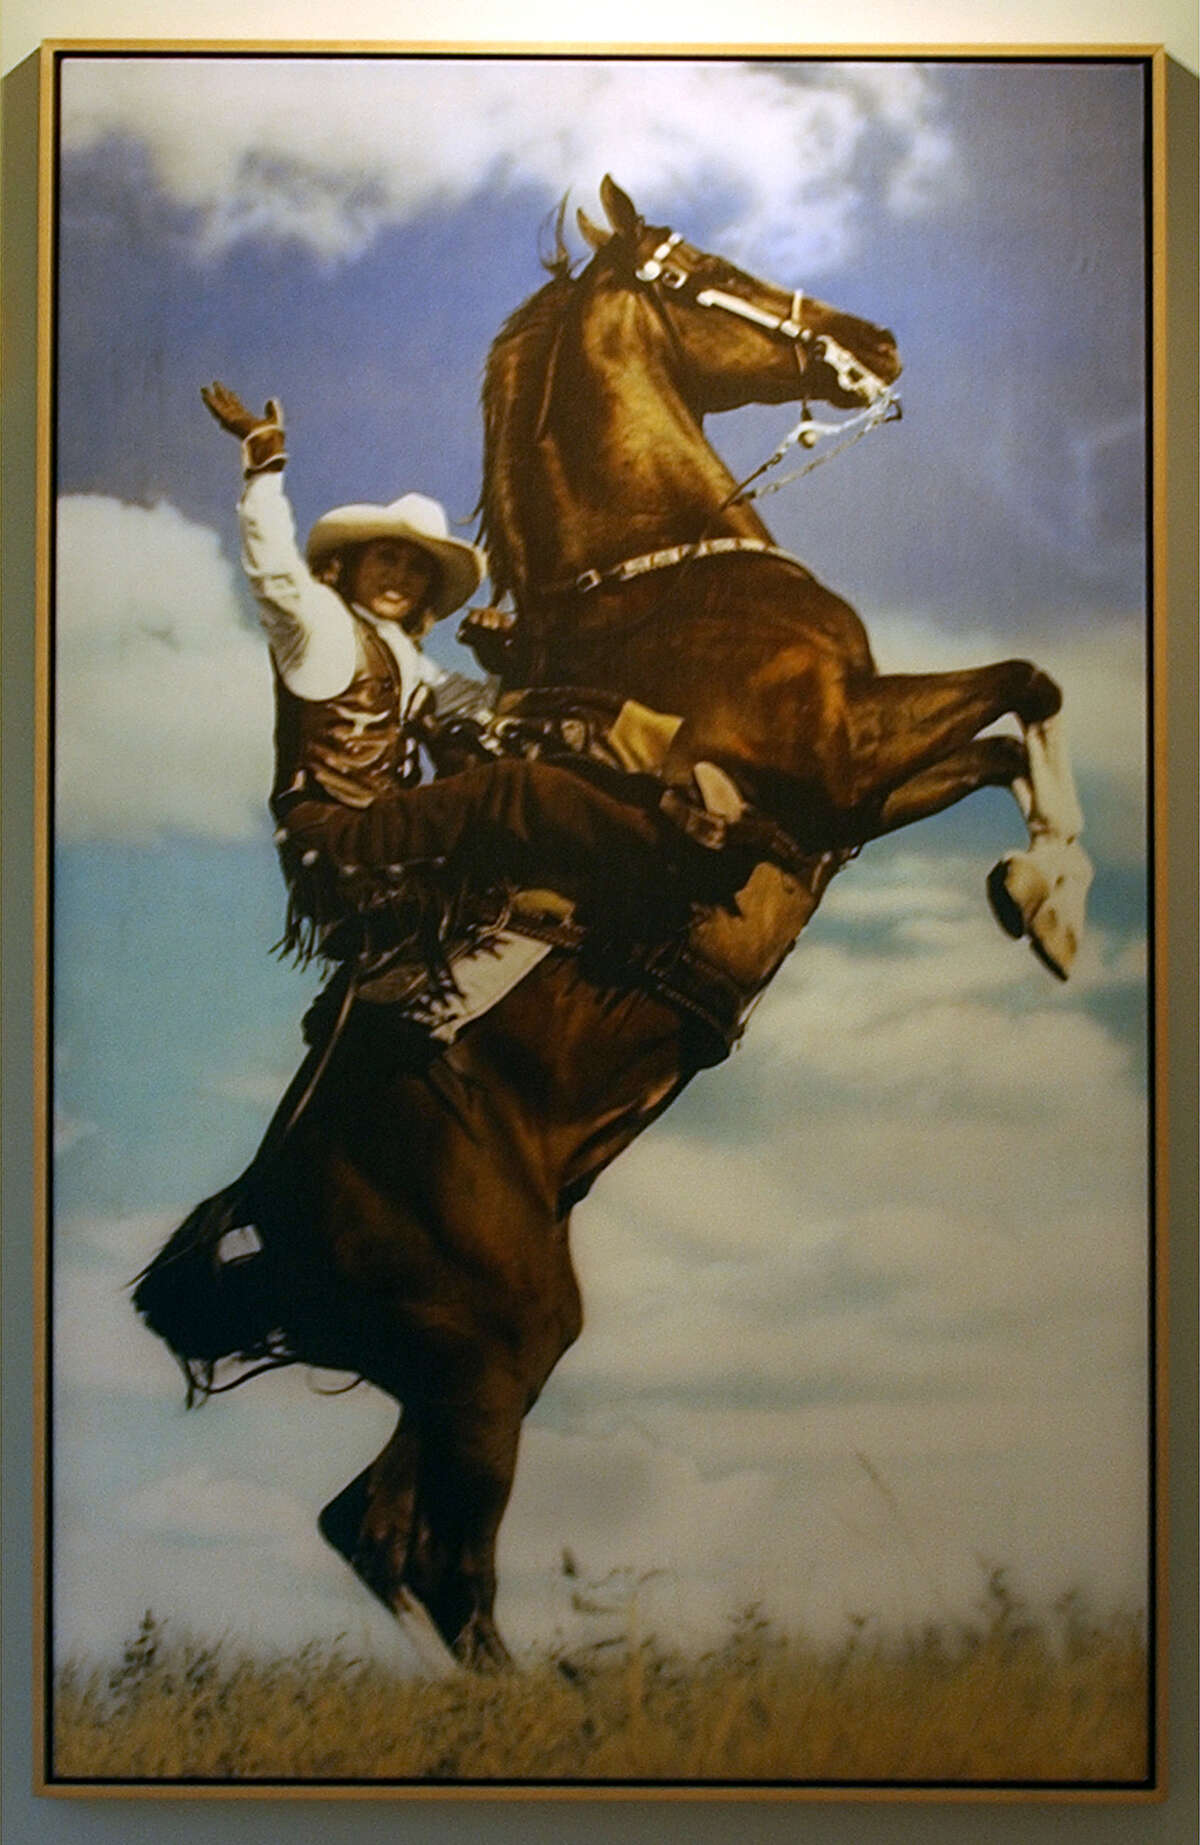 Julianna Holt shown in a photograph by Gray Hawn that hangs in the Holt office in San Antonio.